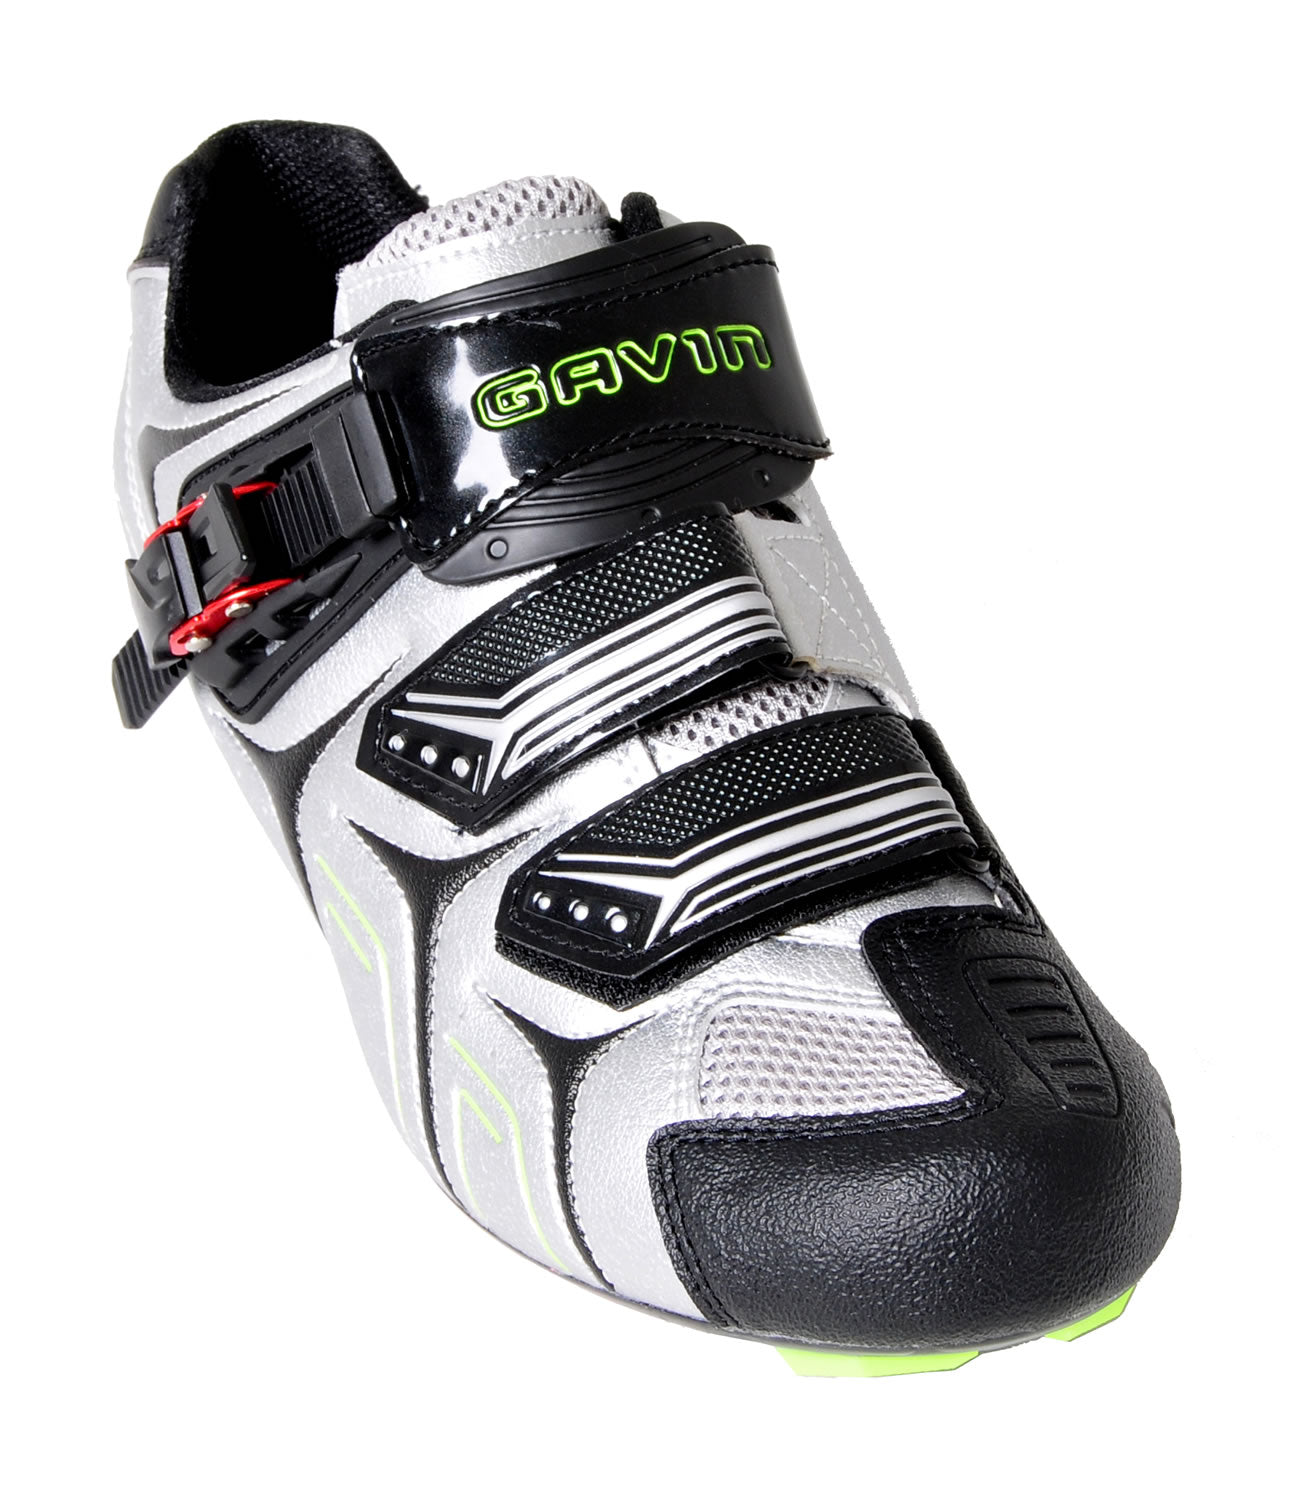 products/525-CARBON-SHOE__03_jpg.jpg